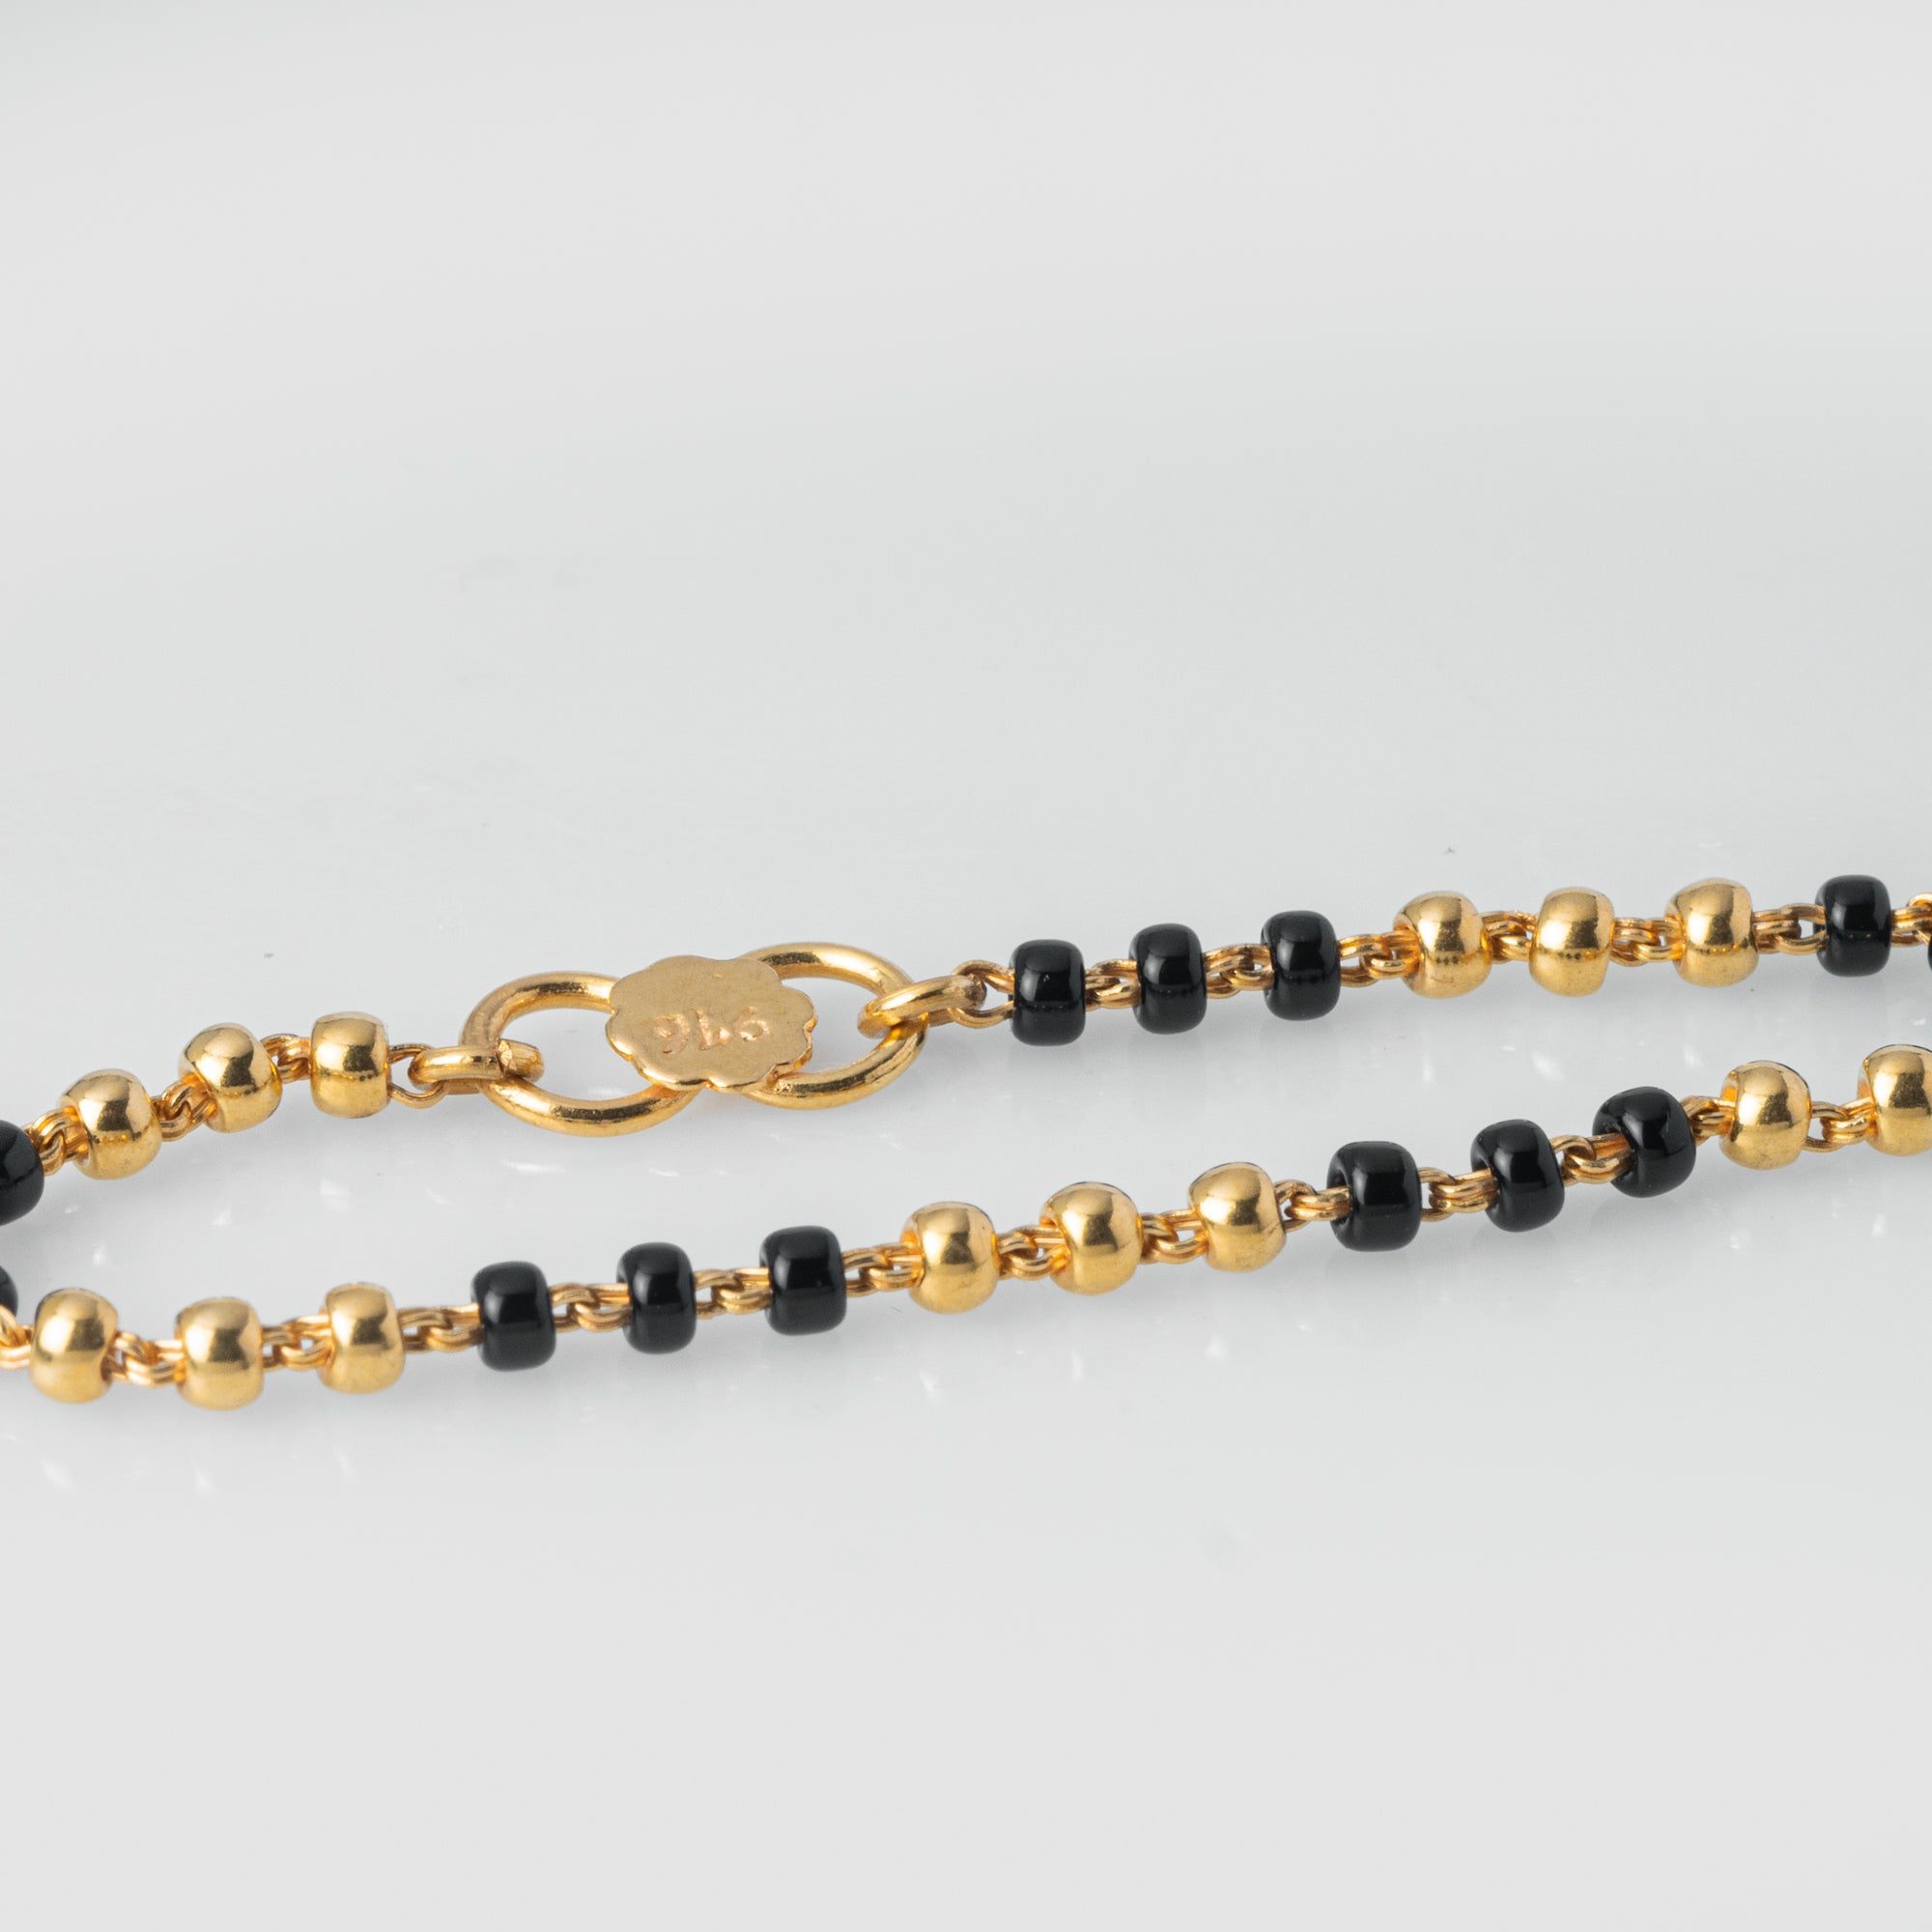 22ct Gold Children's Bracelets with Black Beads CBR-7964